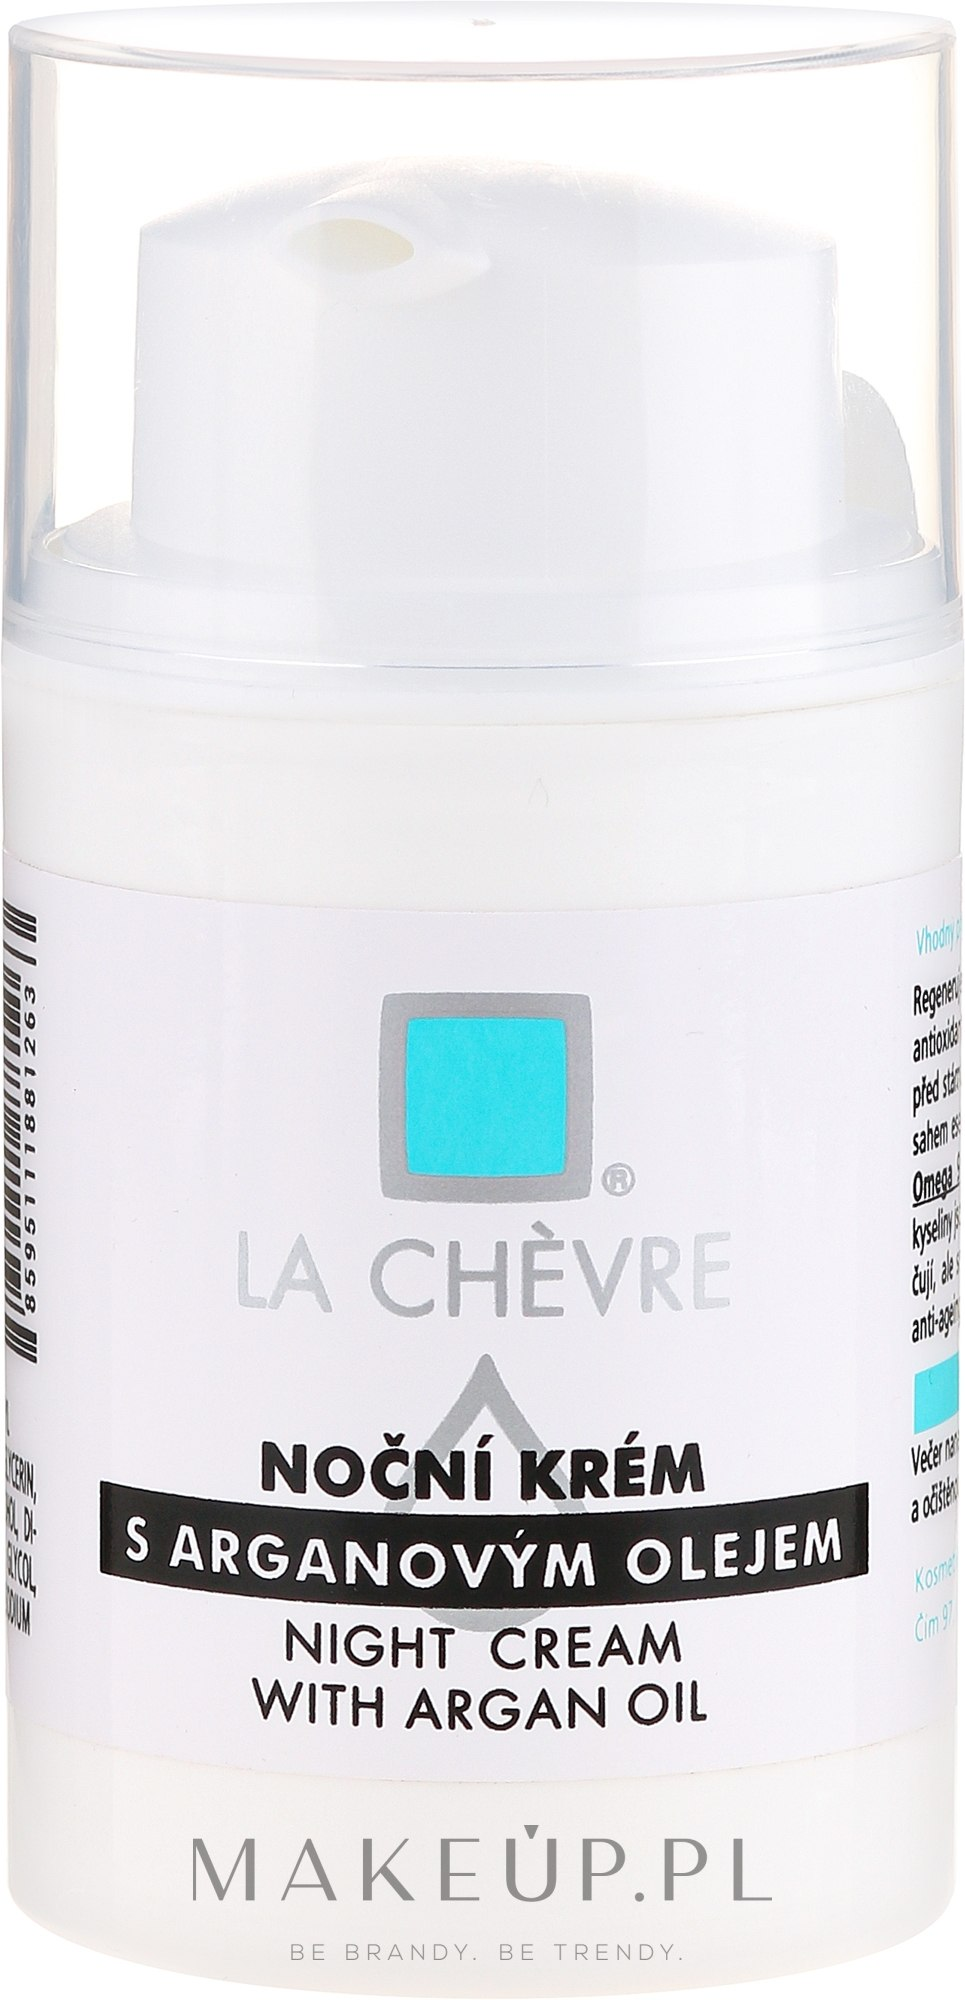 Krem do twarzy na noc z olejem arganowym - La Chévre Night Cream With Argan Oil — фото 50 g